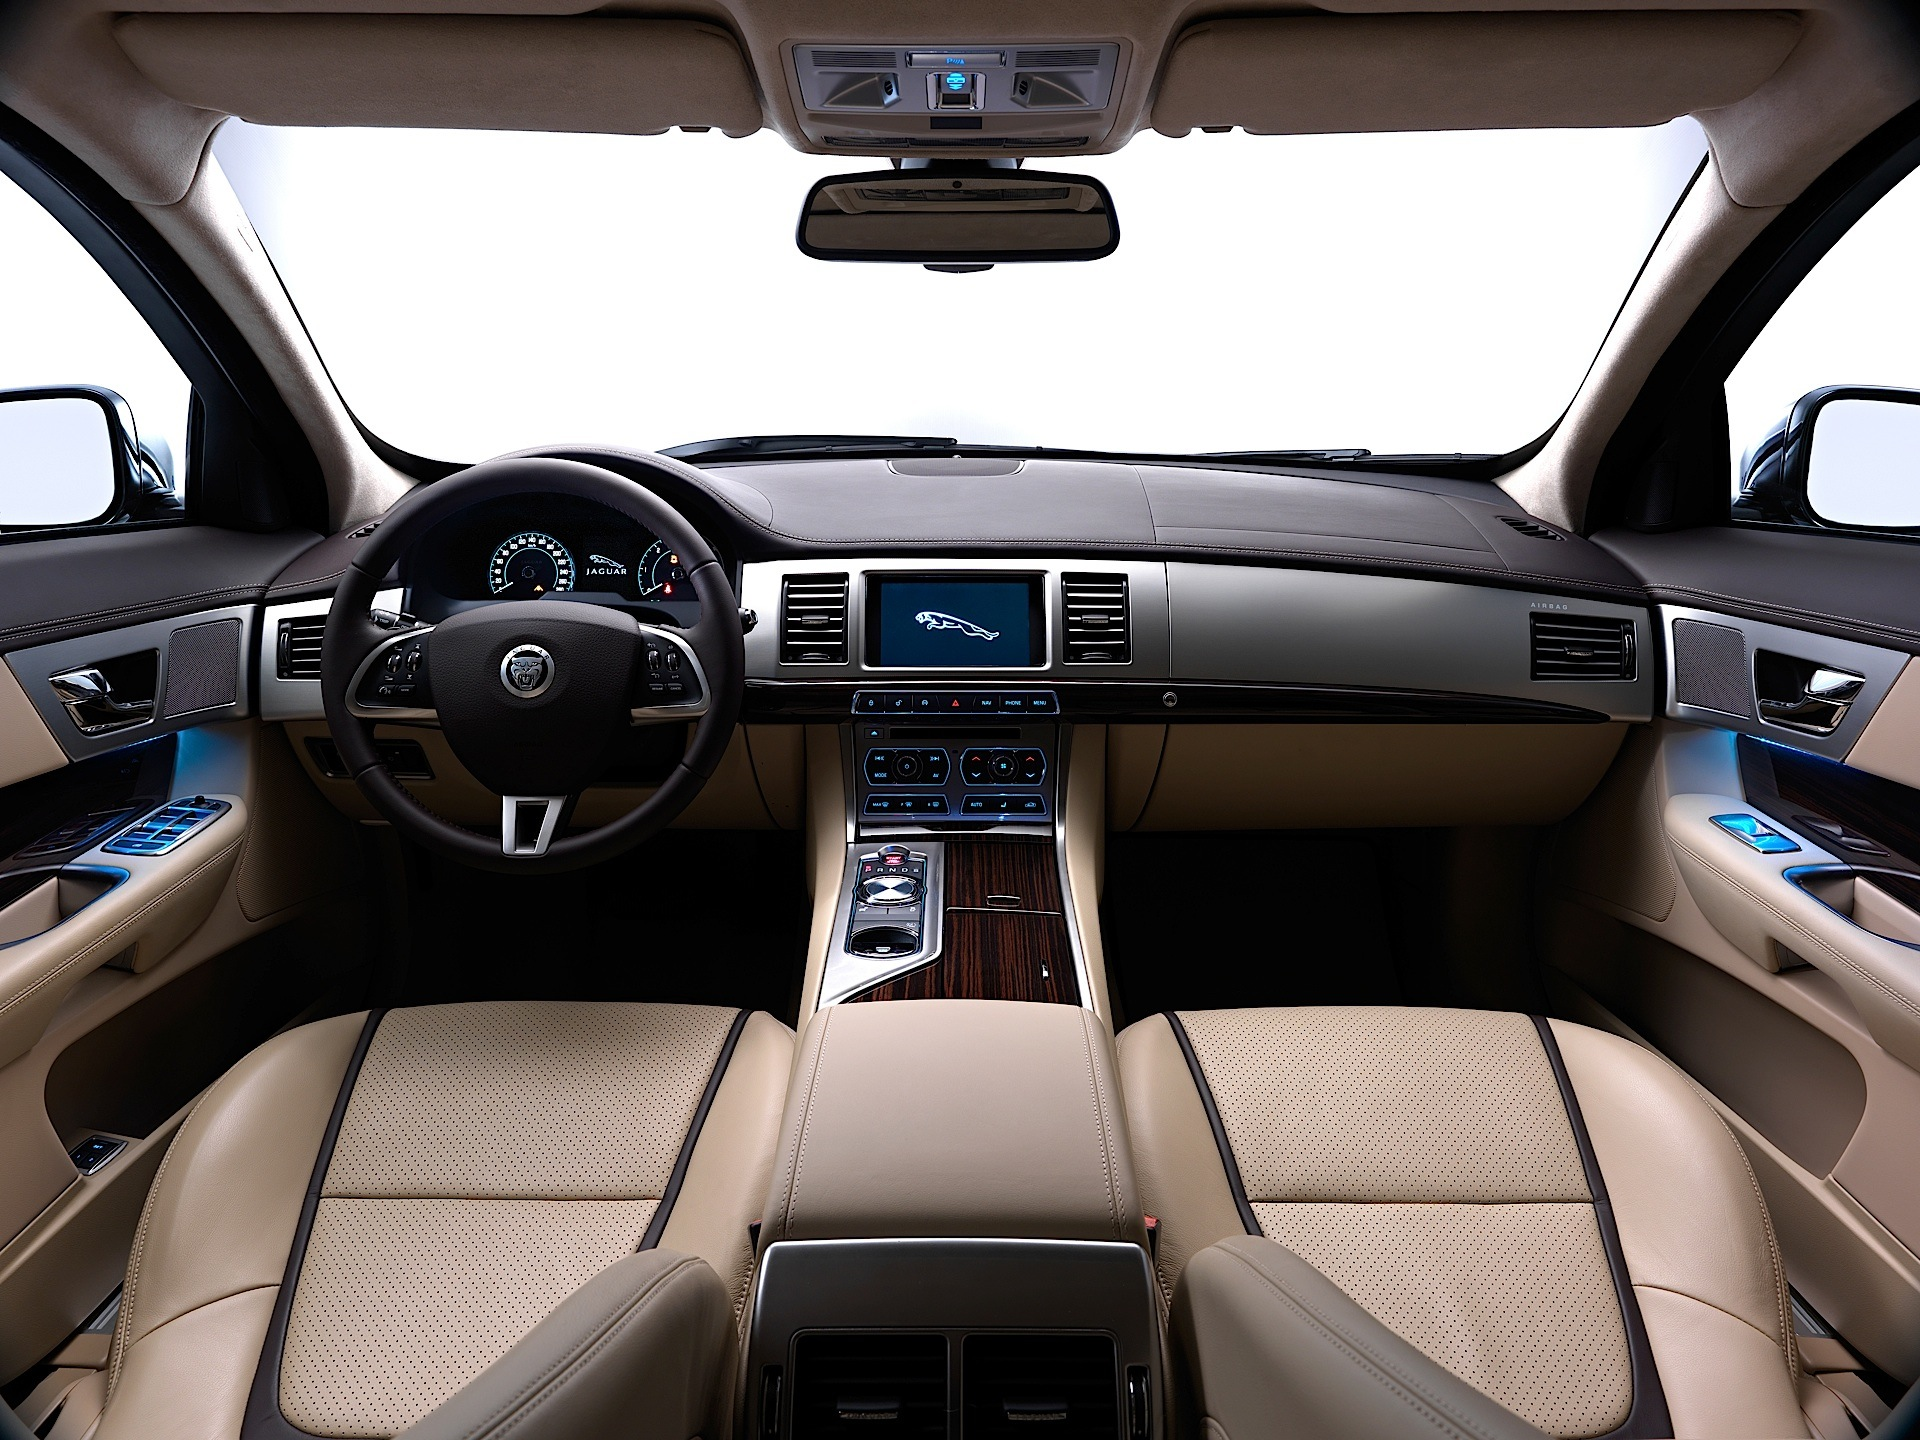 xjl off a xf when it s his driving new fast damien he smell jaguar indulgences liked the price one wore that of pin